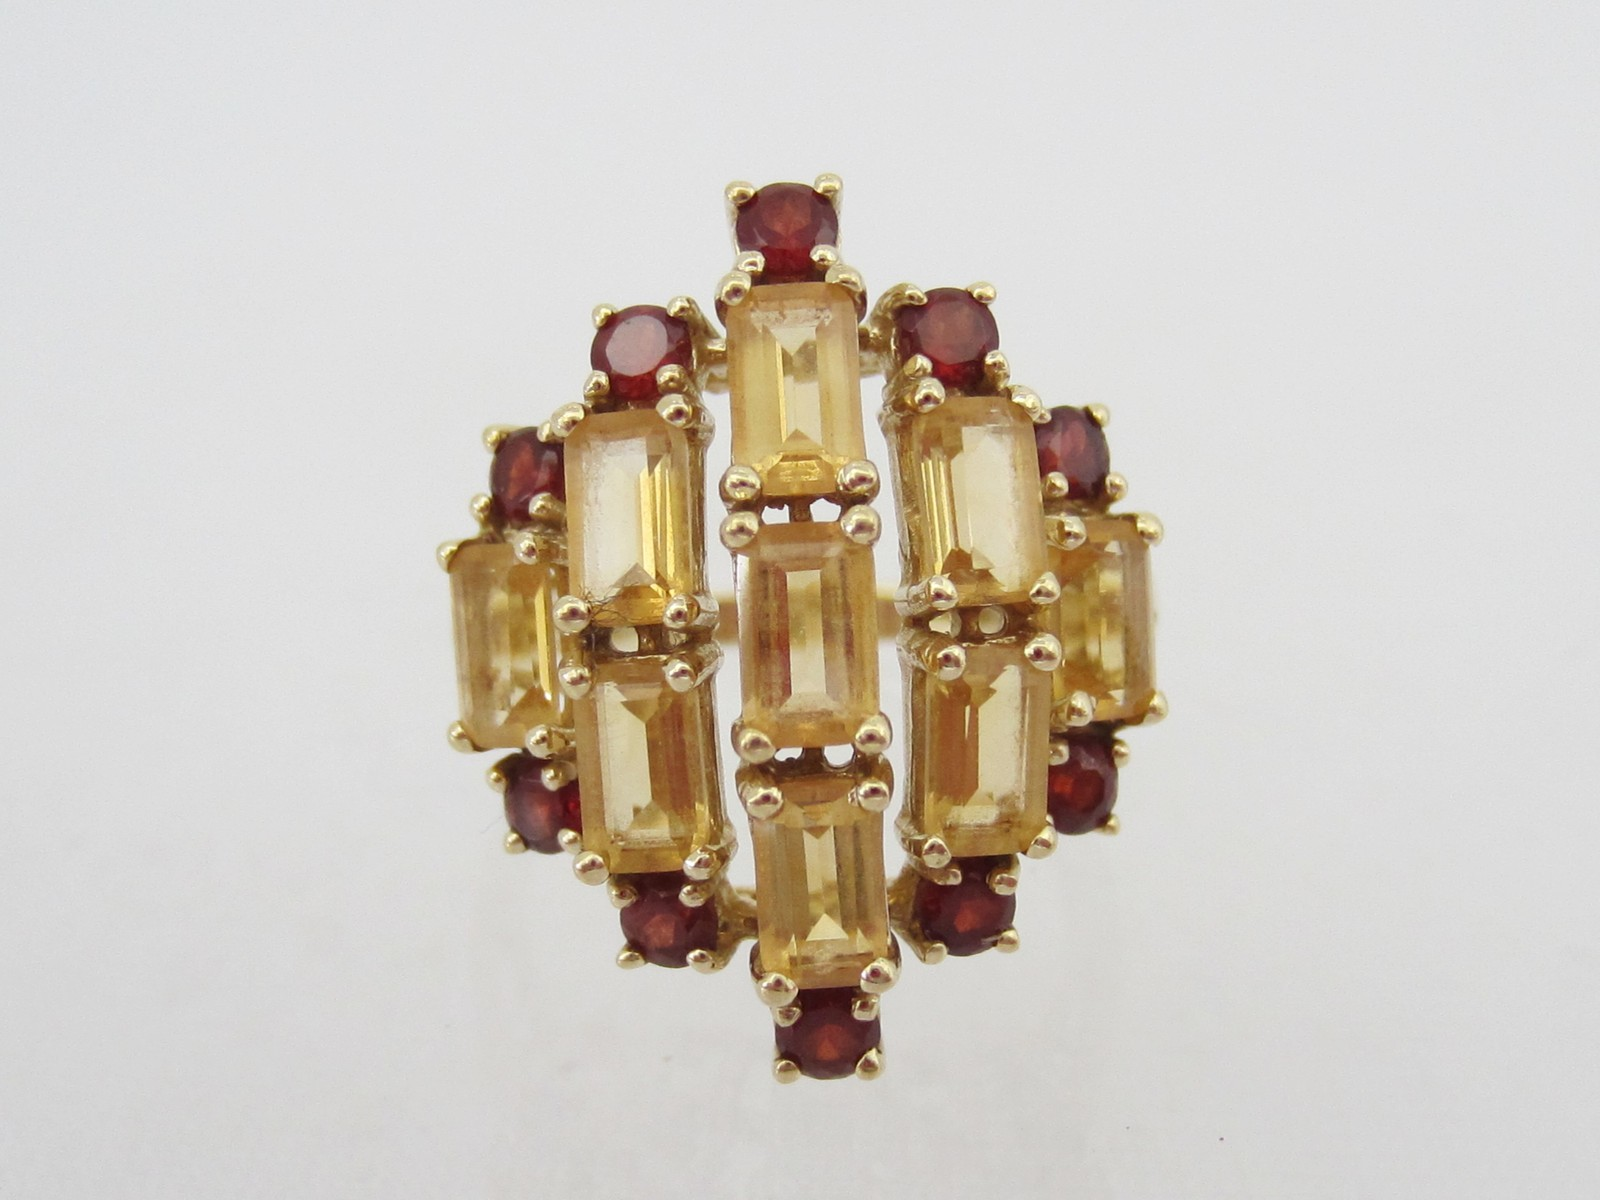 Vintage 10K Solid YG 3.21ct Genuine Garnet & Citrine Ring Size 7.25